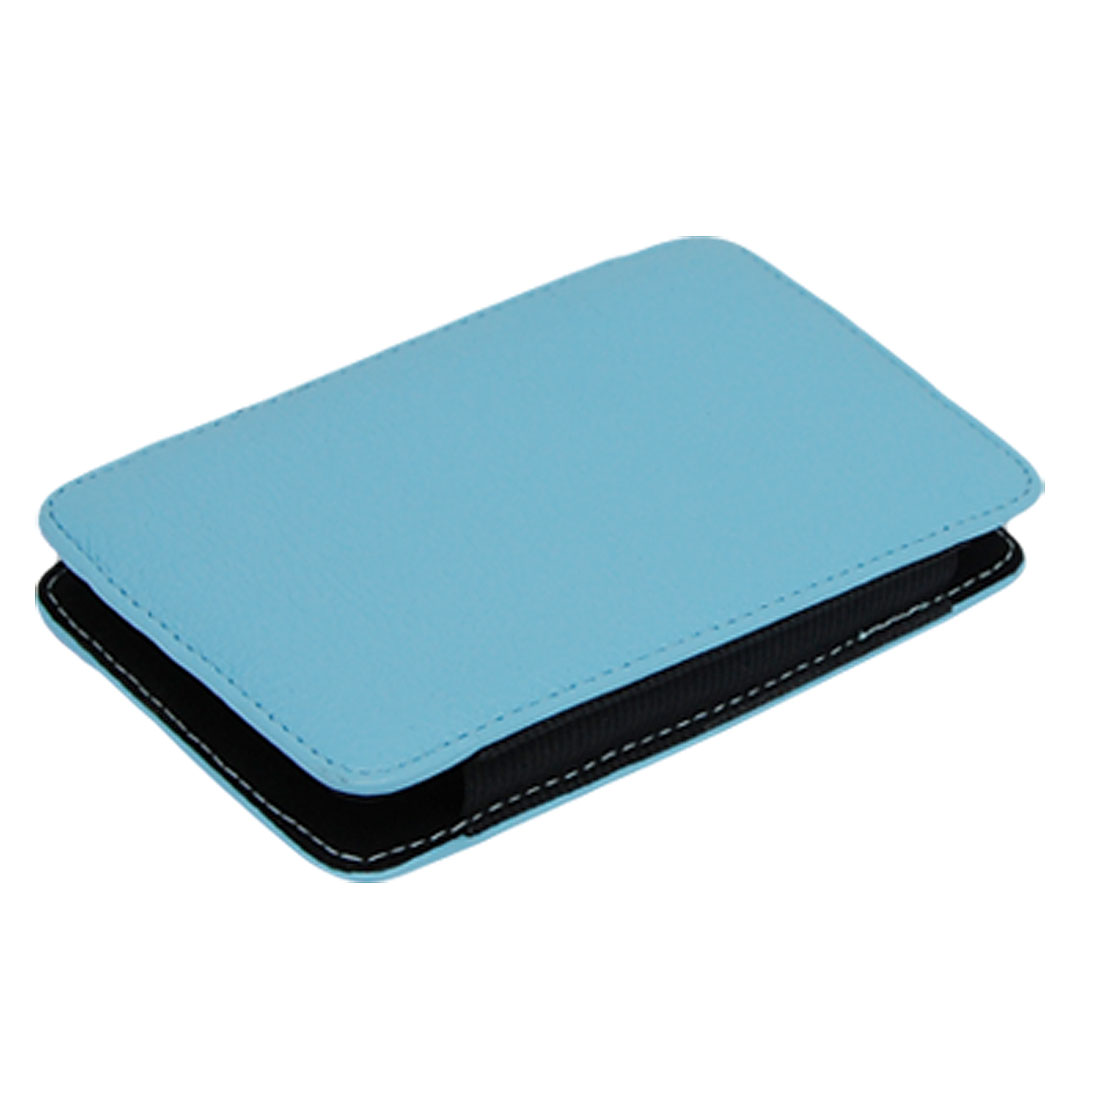 "Harddisk Protection Blue PU Leather Case Cover 2.5"" 2.5 Inches Portable HDD Box"